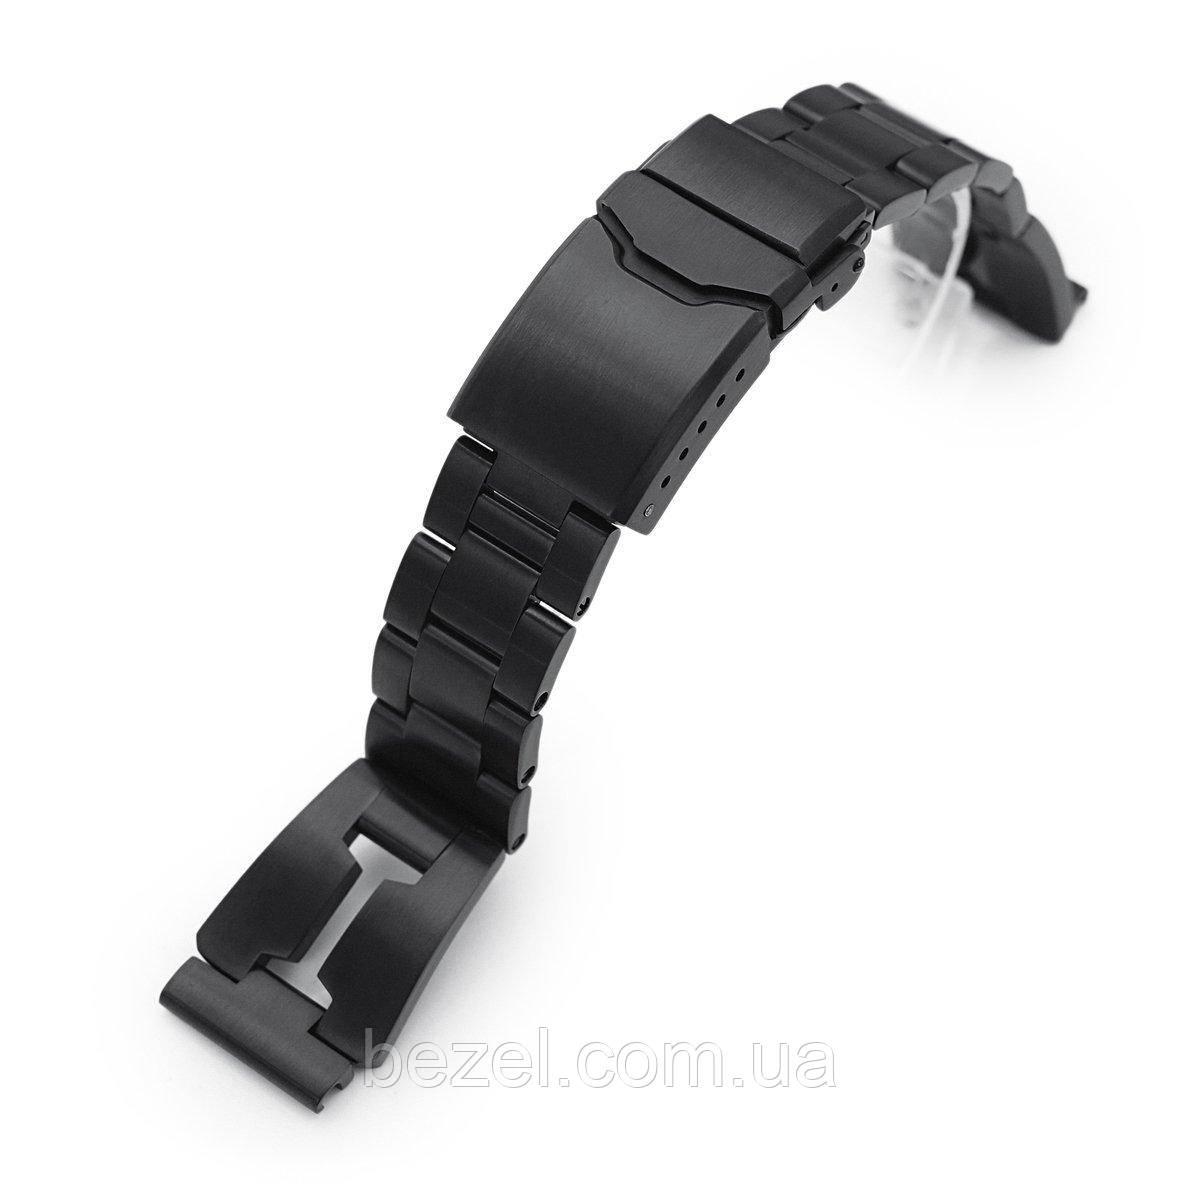 20mm Reissue Retro Razor 316L Stainless Steel PVD Black Watch Band, Button Chamfer